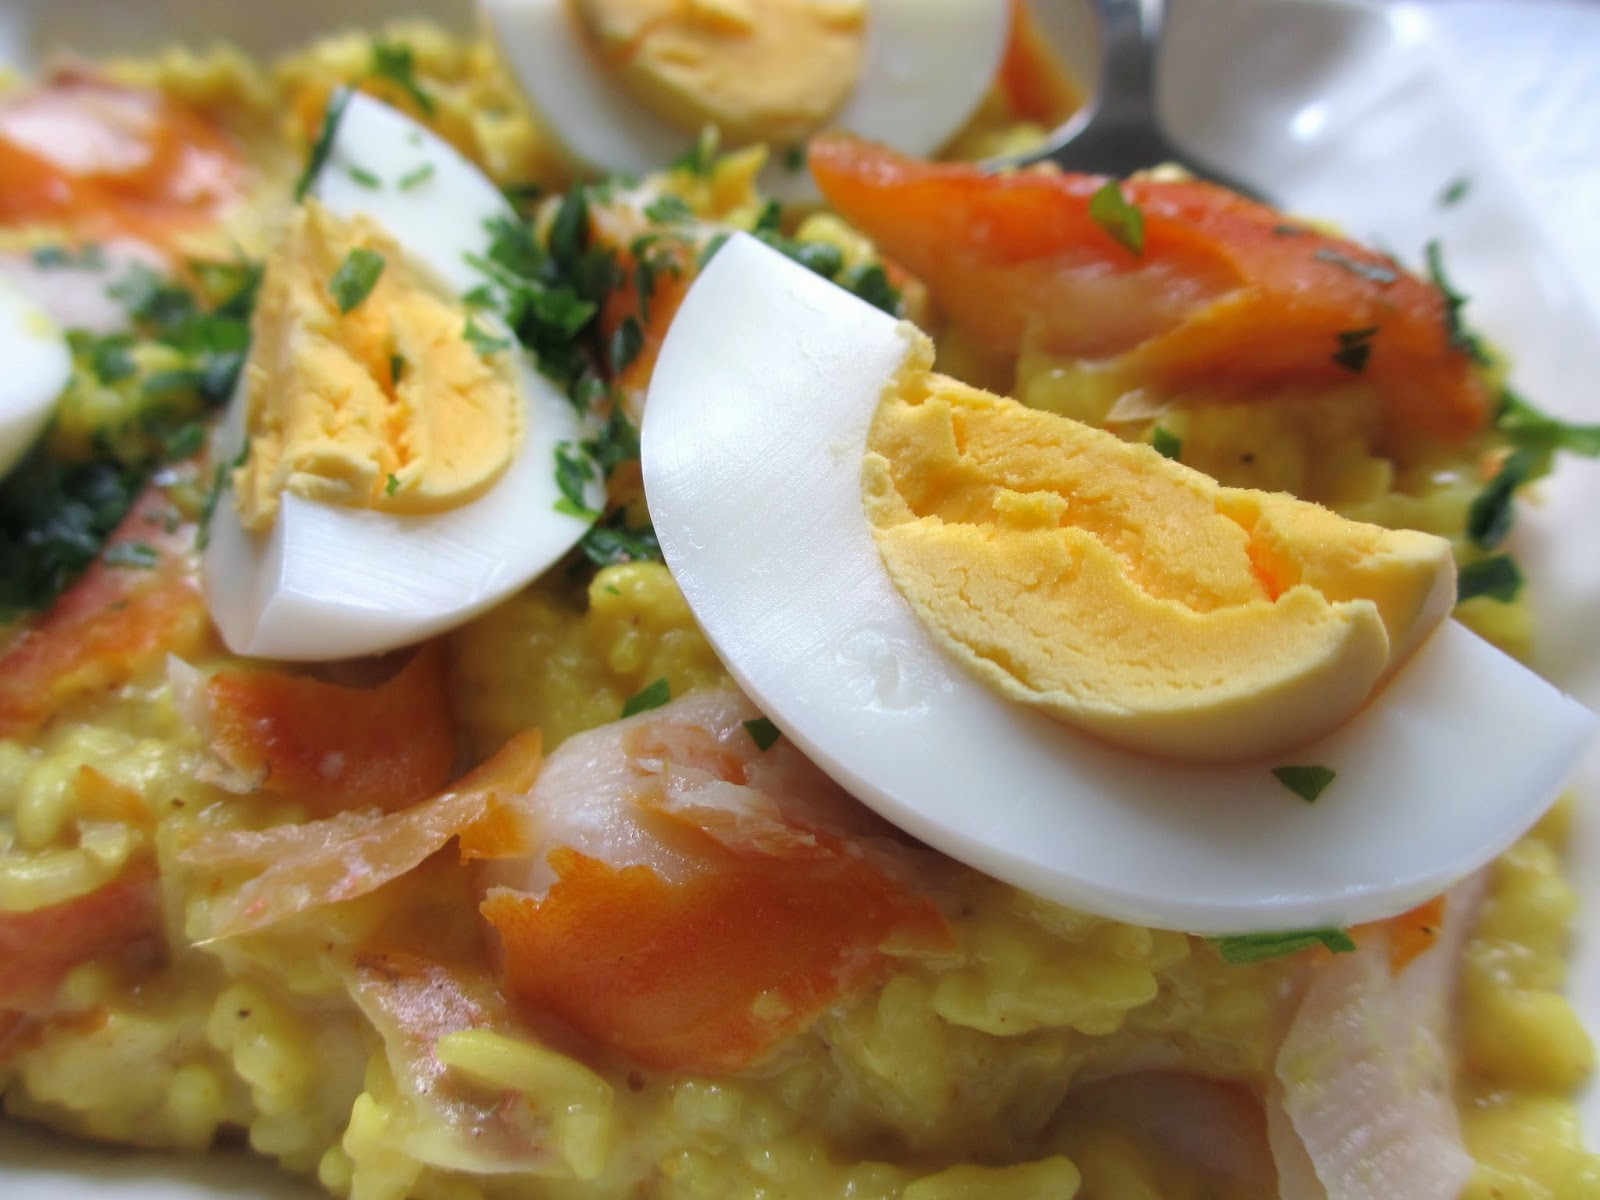 Cuisine Vin De France Recette Cooking Julia Kedgeree